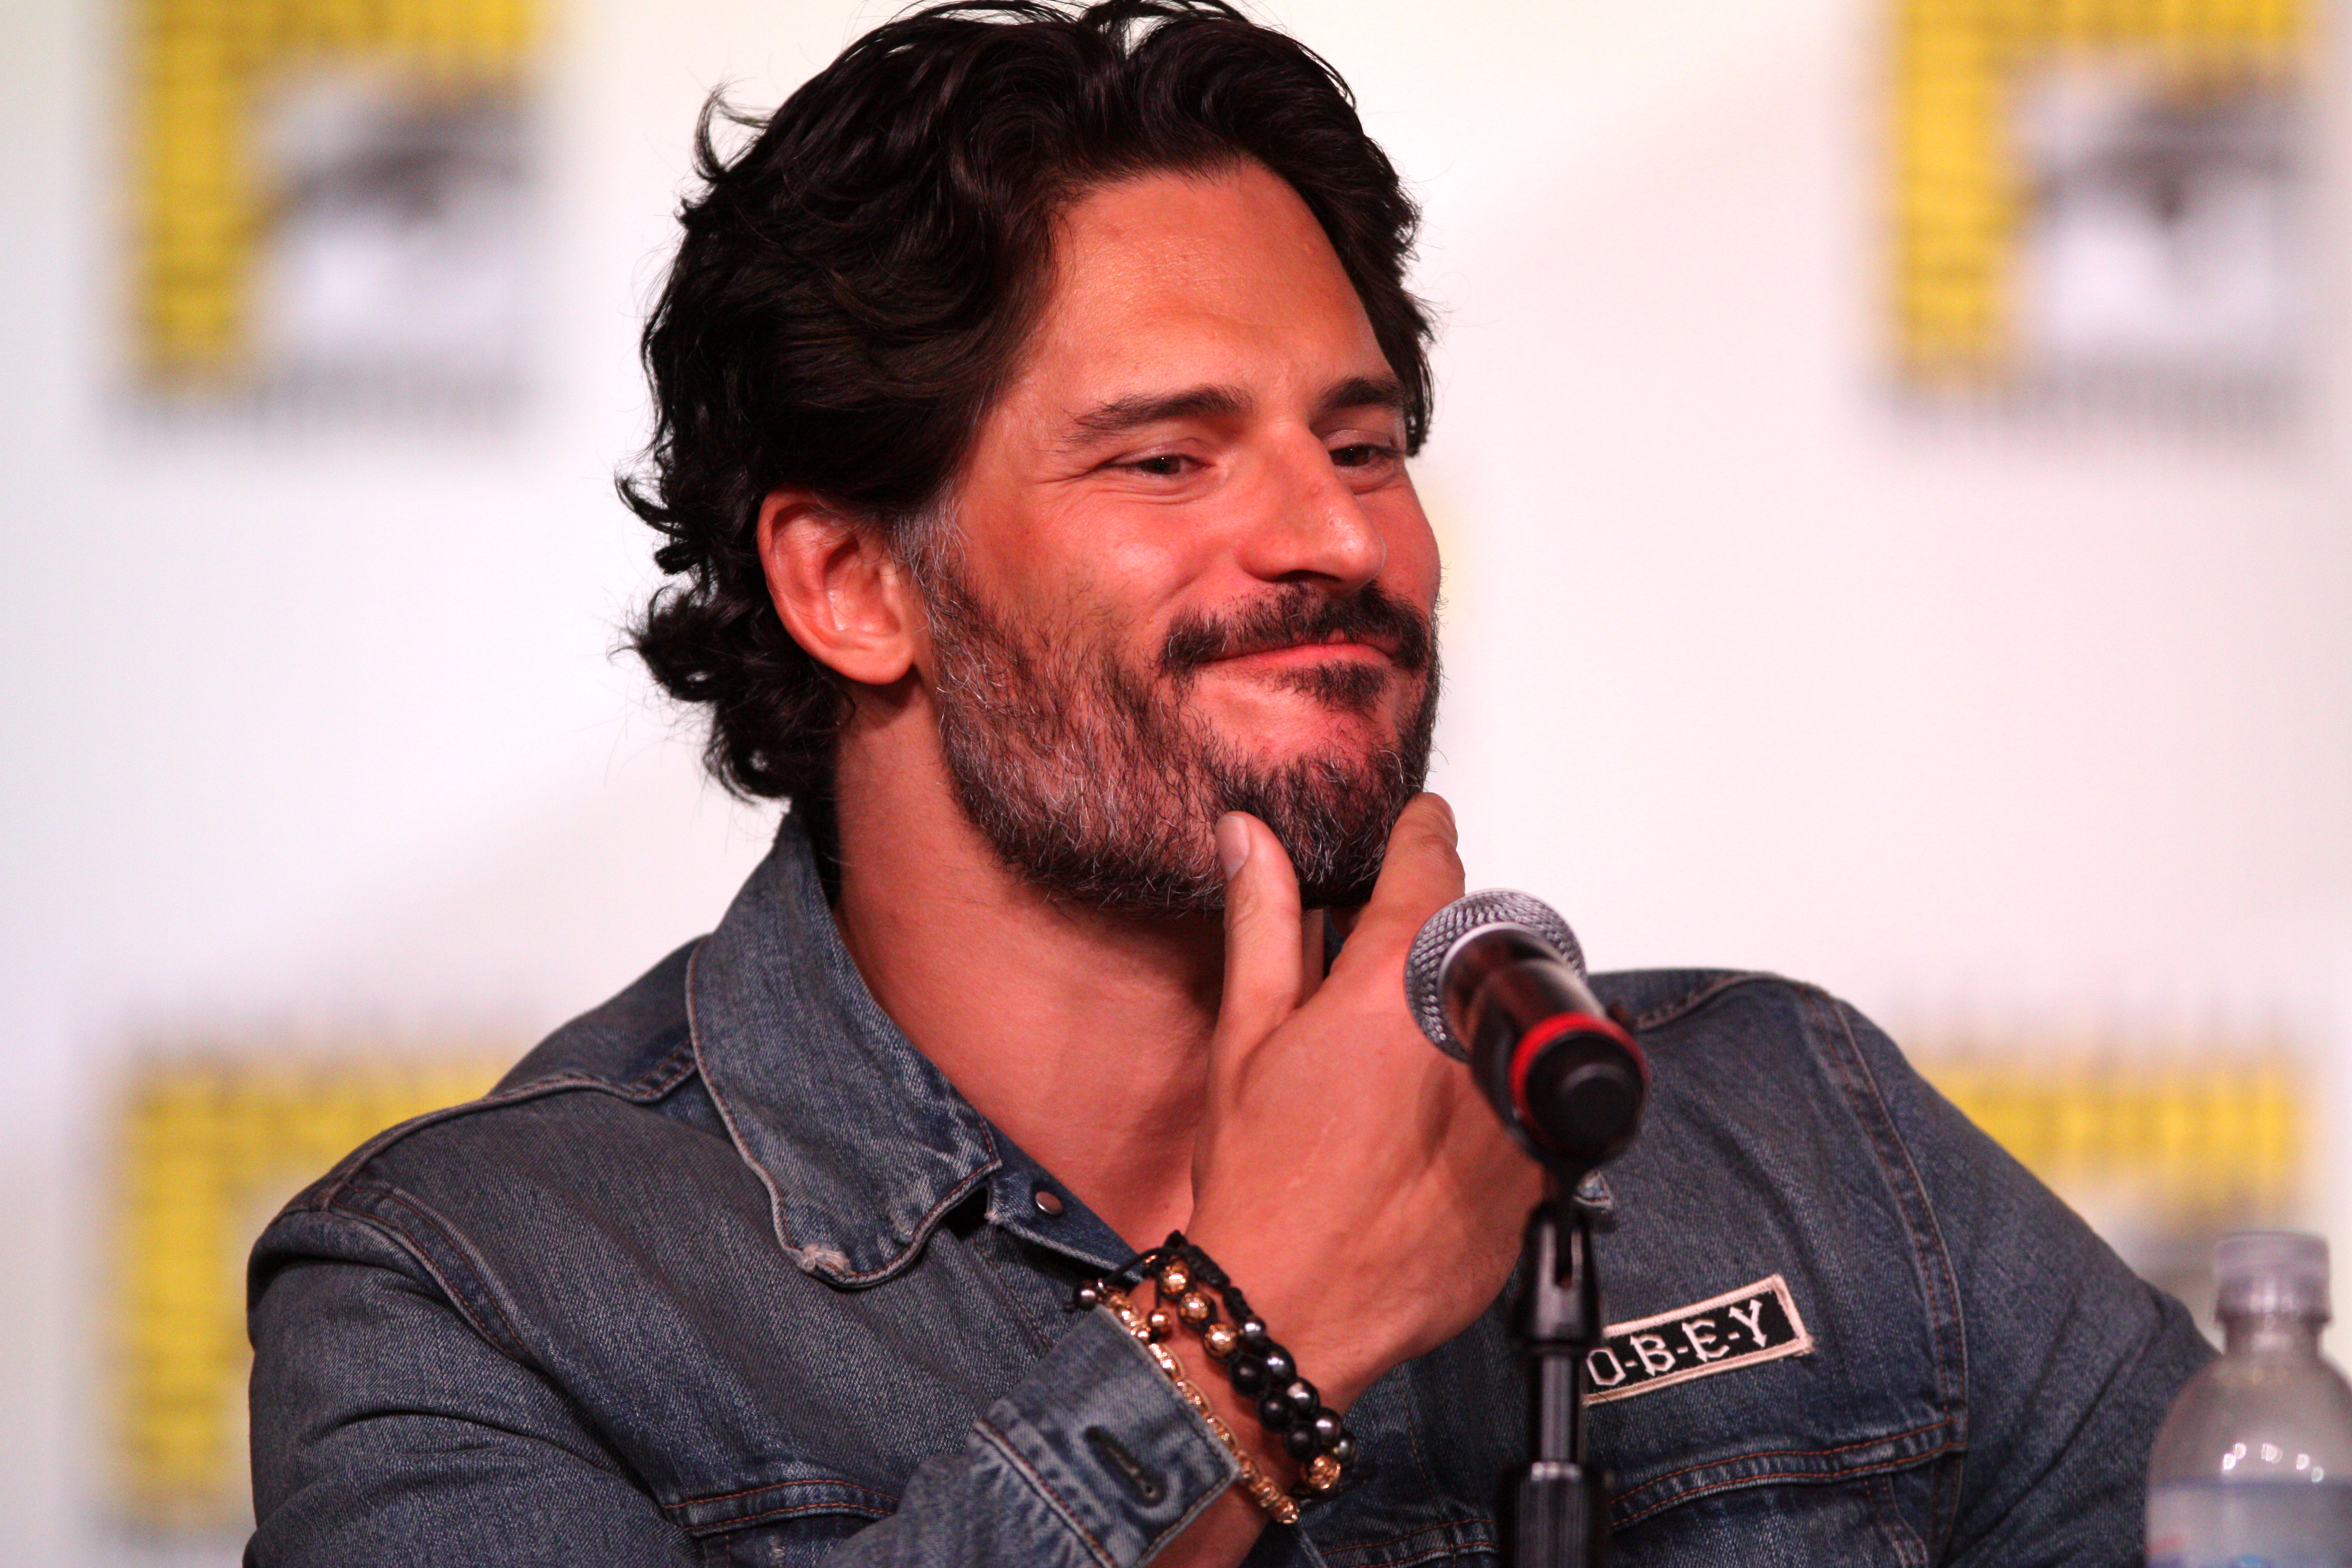 A Deathstroke Movie Is In The Works Starring Joe Manganiello And Directed By The Raid's Gareth Evans 1